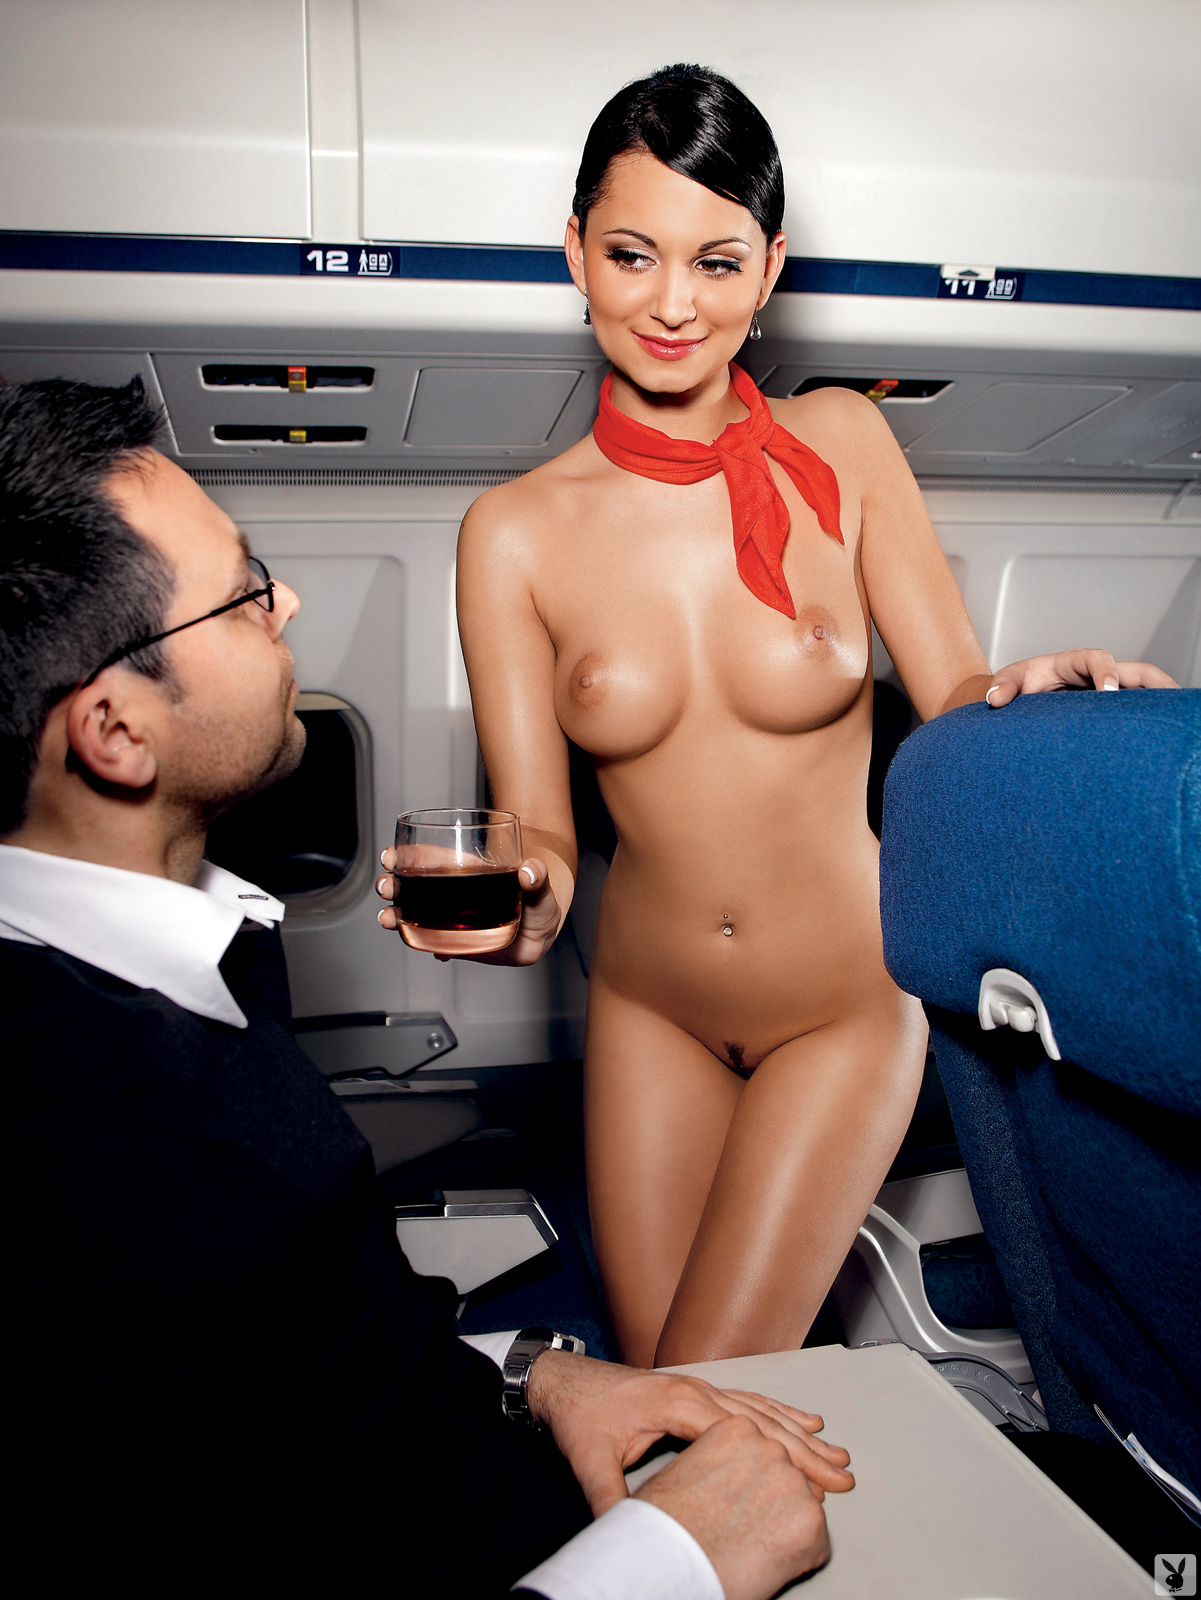 flight attendant naked uniform